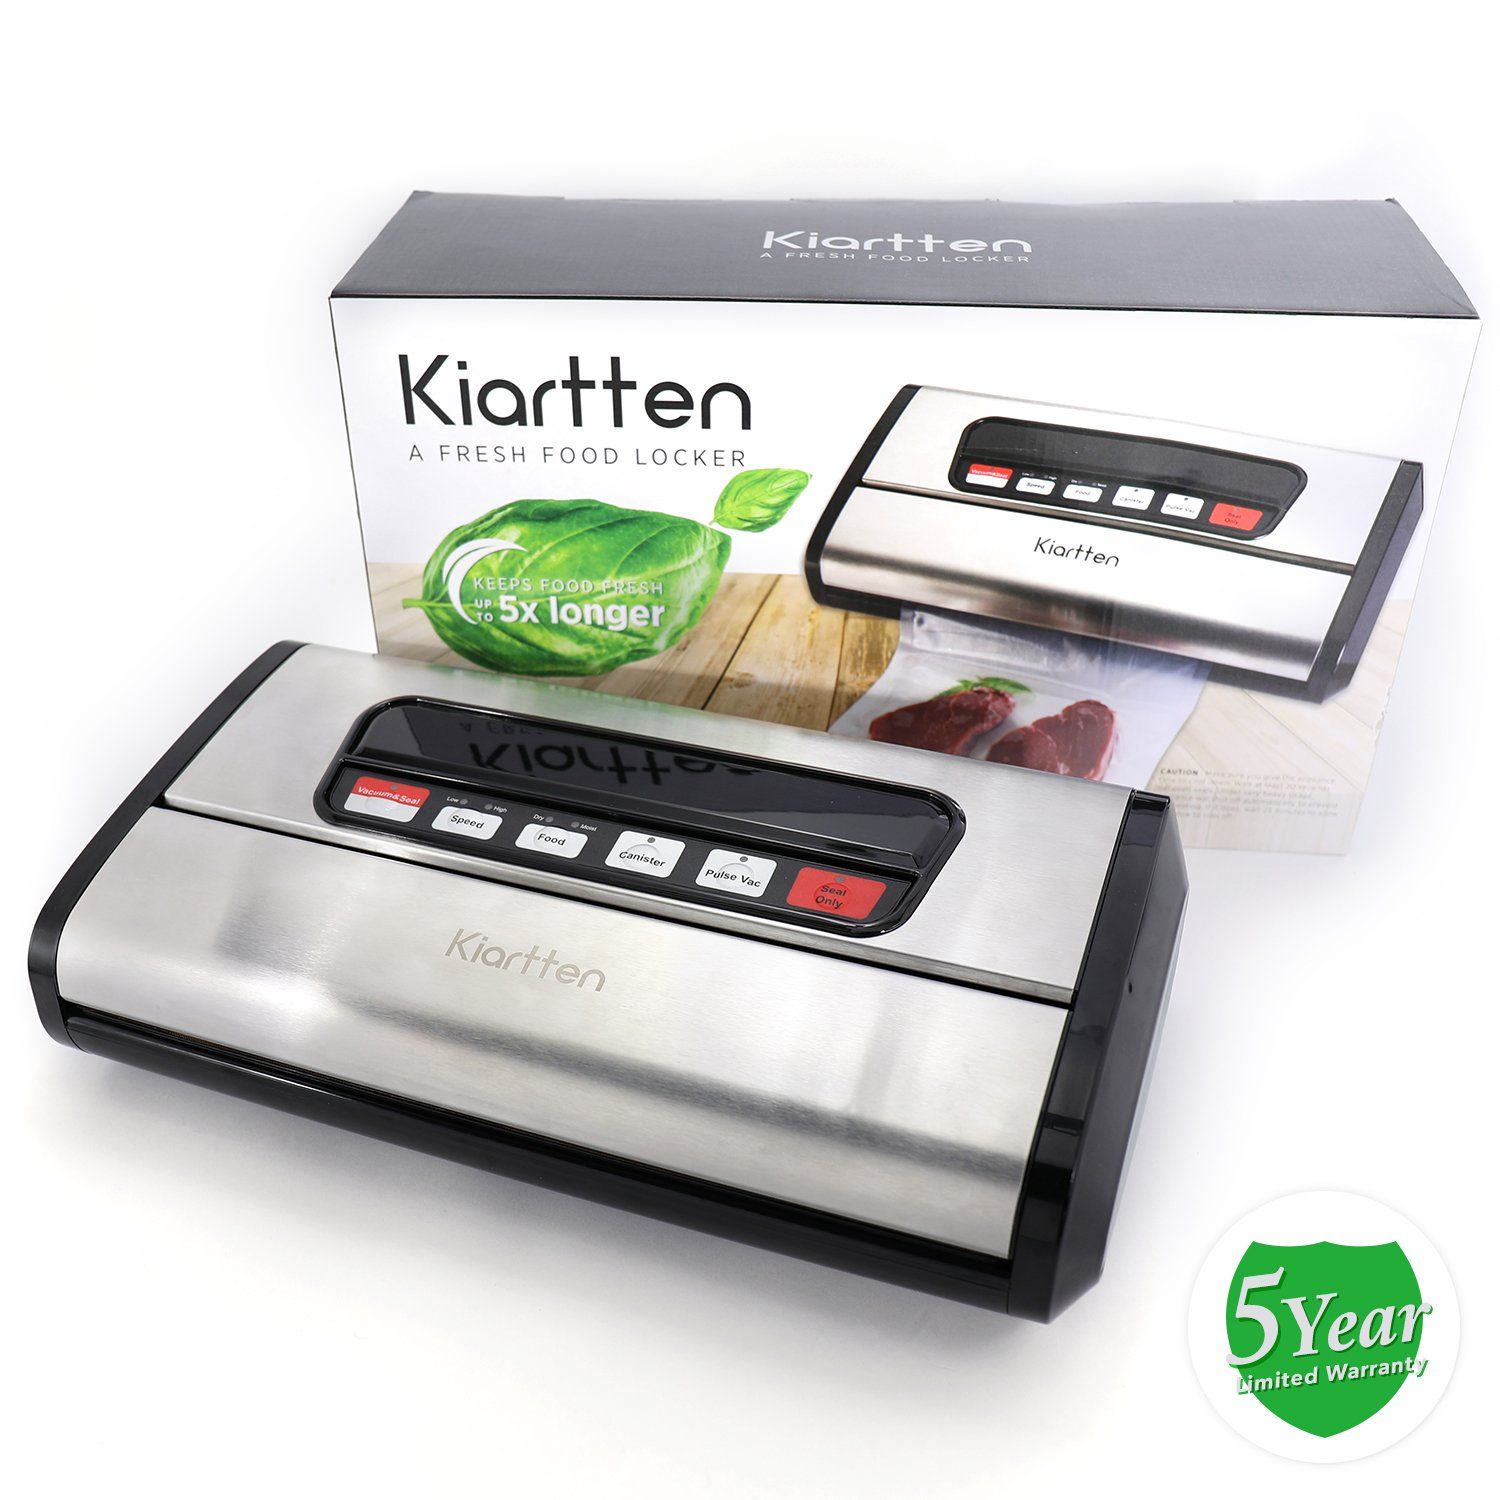 Kiartten Vacuum Sealer, A Fresh Food Locker for Your Kitchen. Keeps Food Fresh Up To 5X Longer. (Stainless Steel) by Spreaze (Image #1)